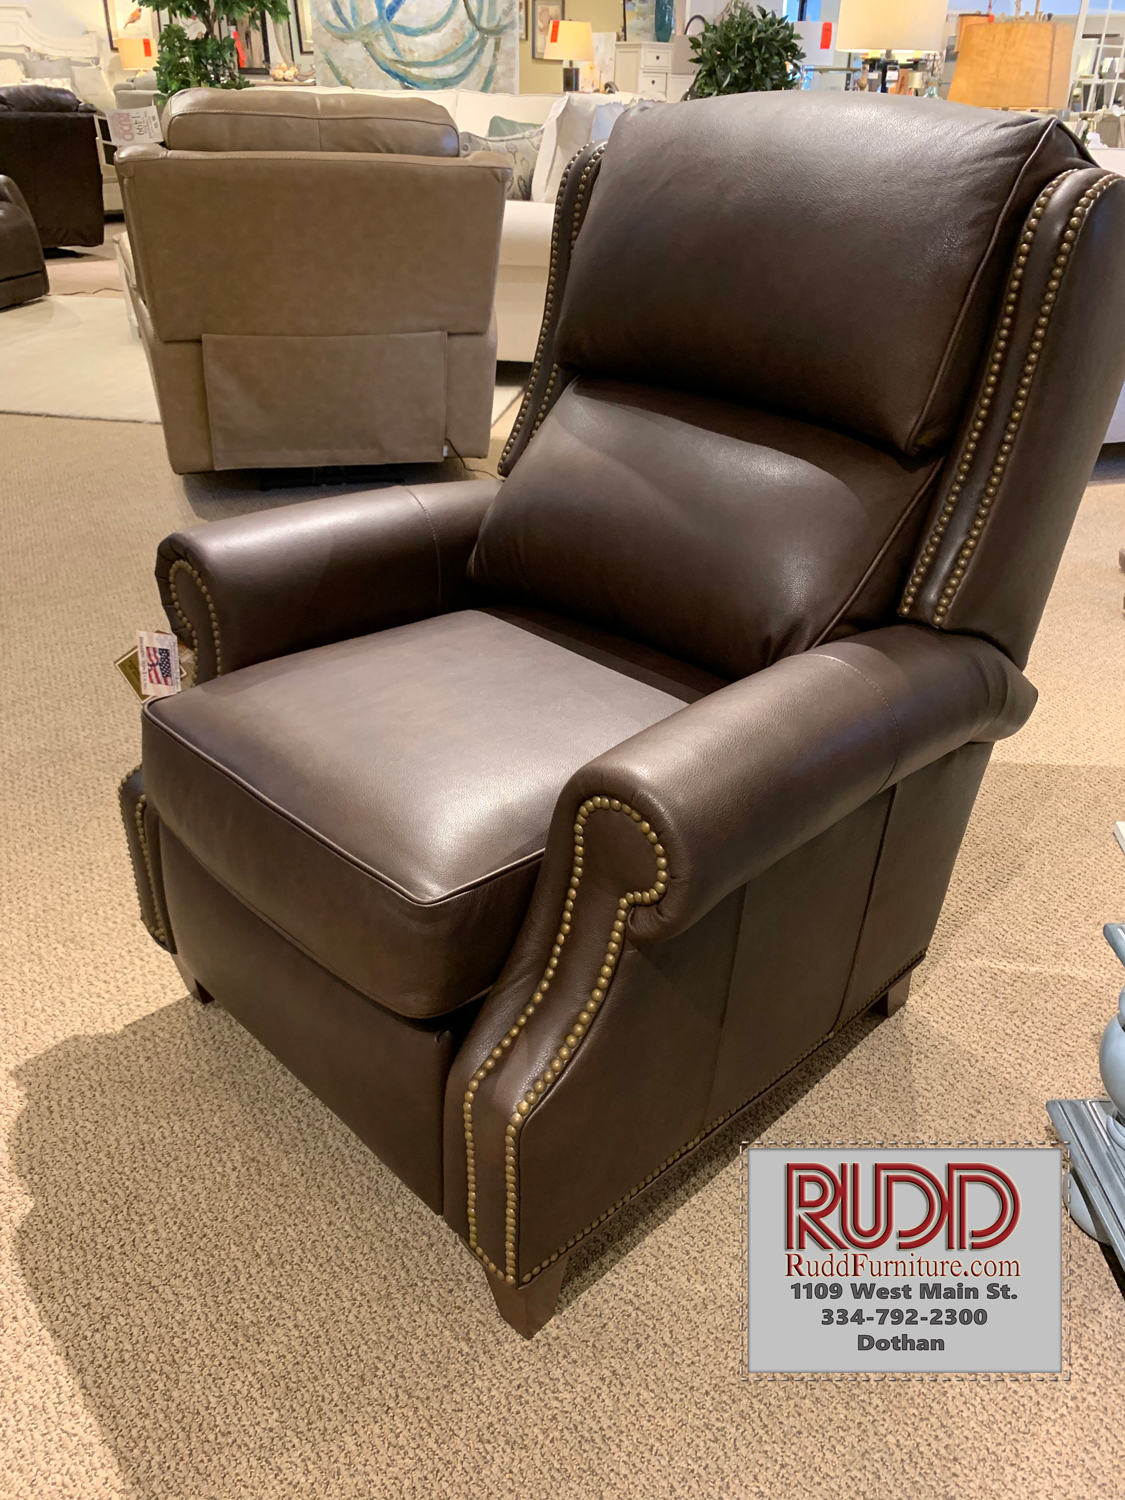 3020 Huss Leather Recliner By Bradington Young Rudd Furniture